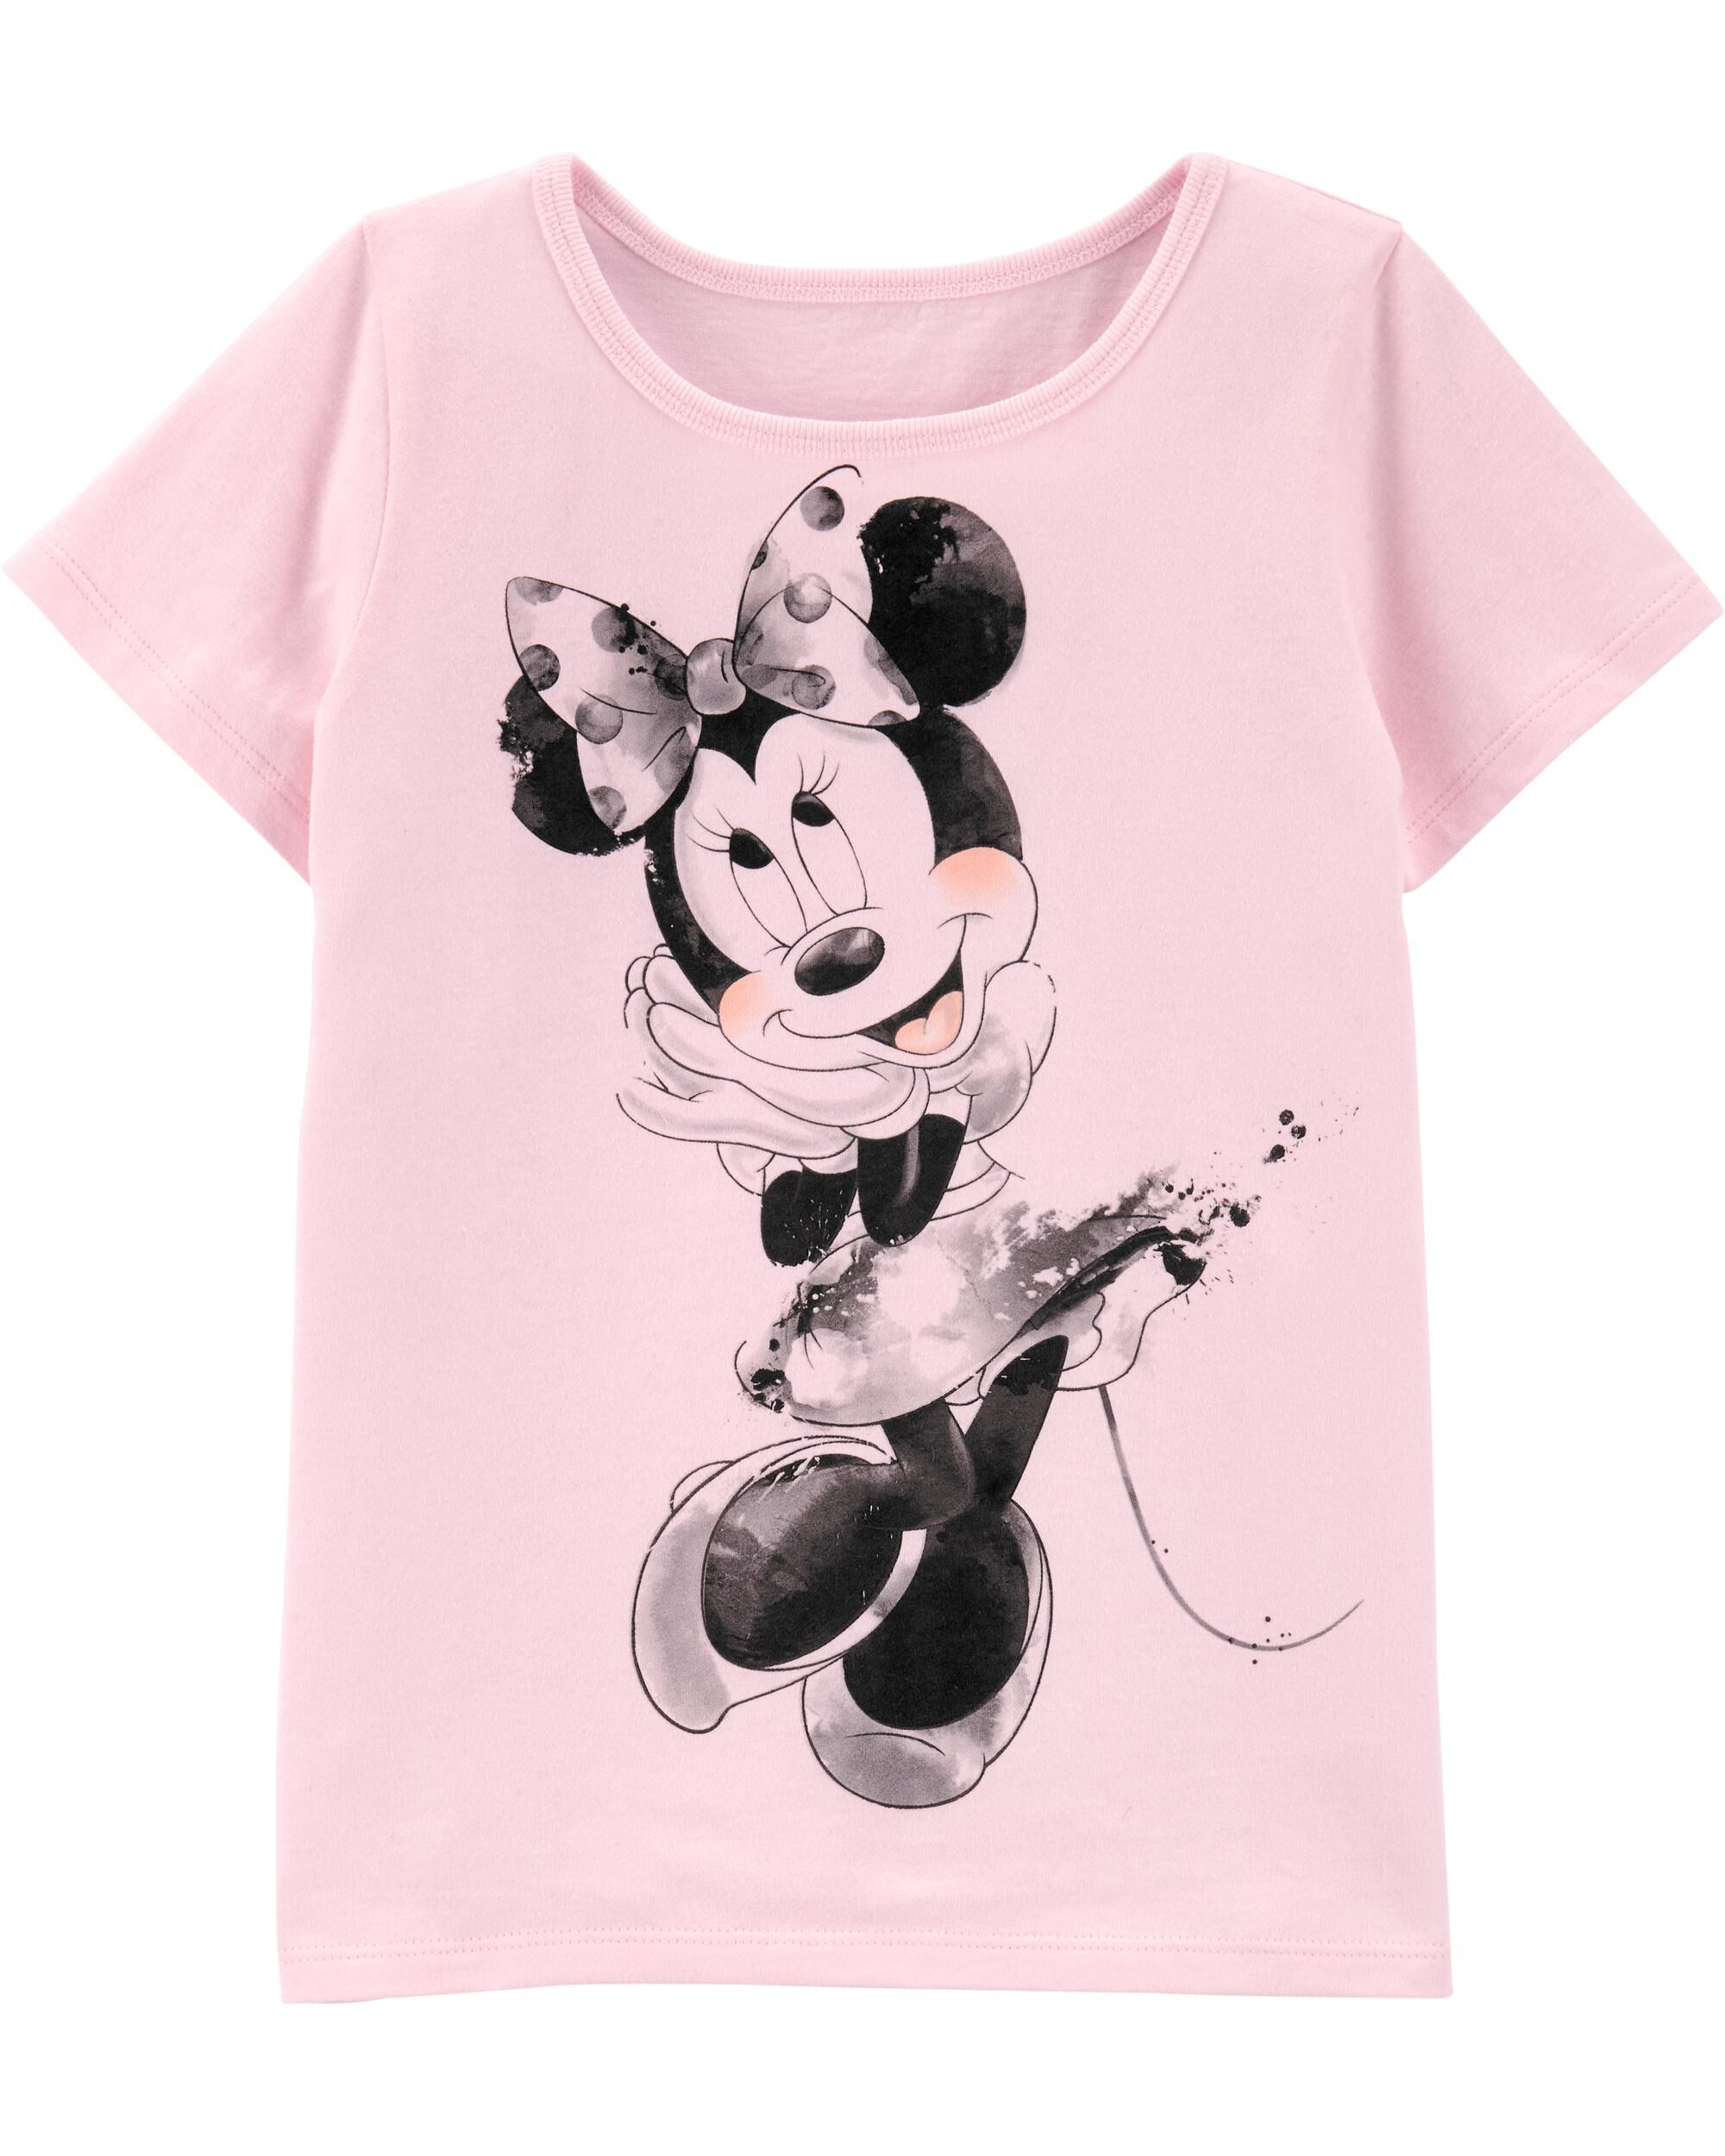 *DOORBUSTER* Minnie Mouse Tee